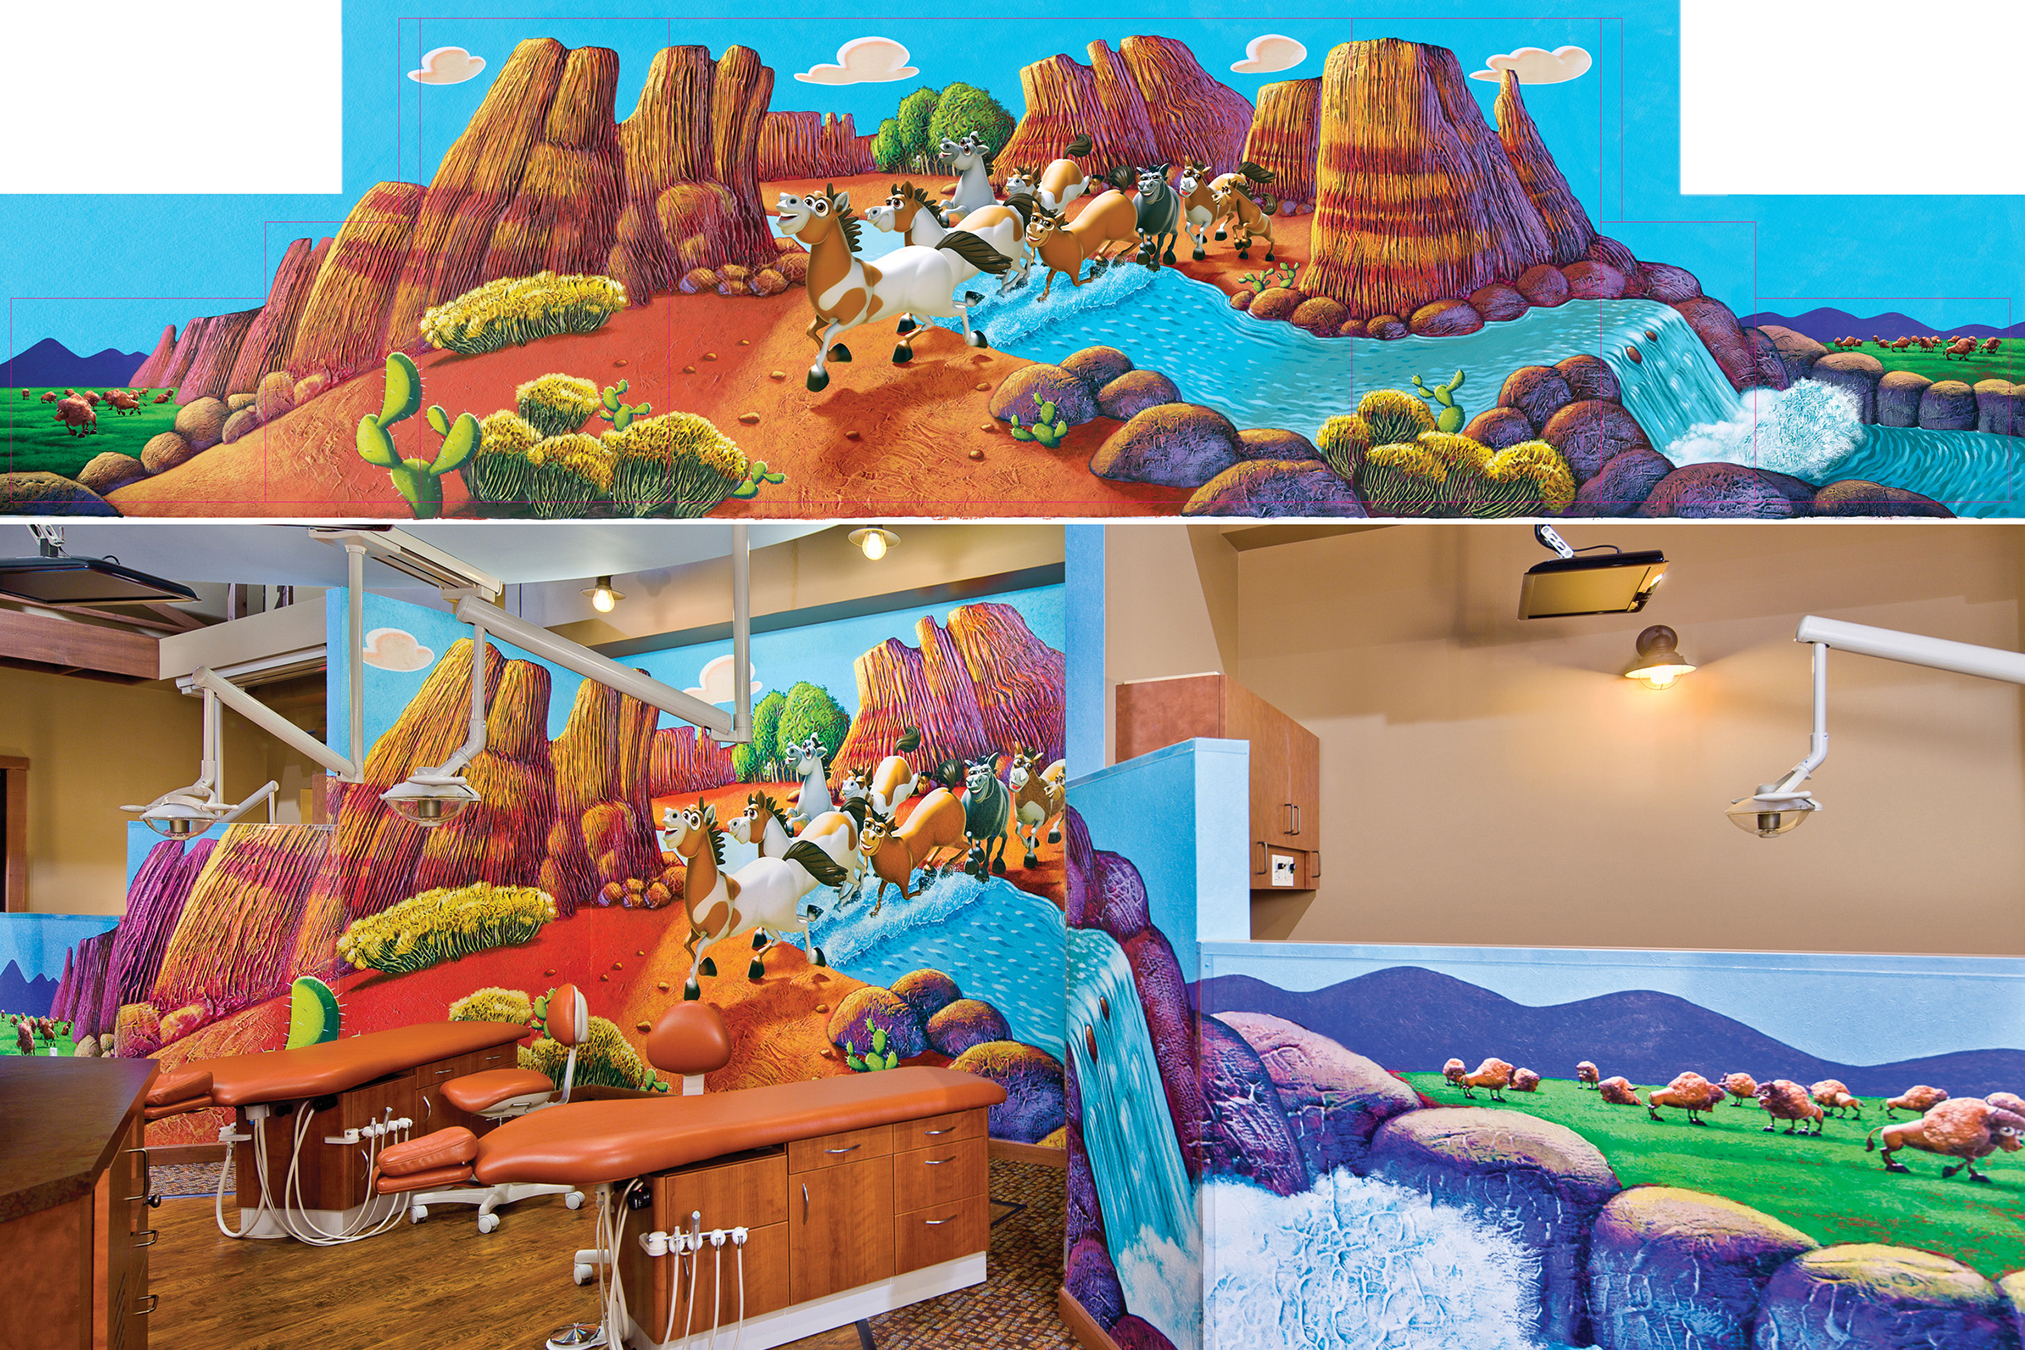 Entire Western Themed Treatment Room Mural